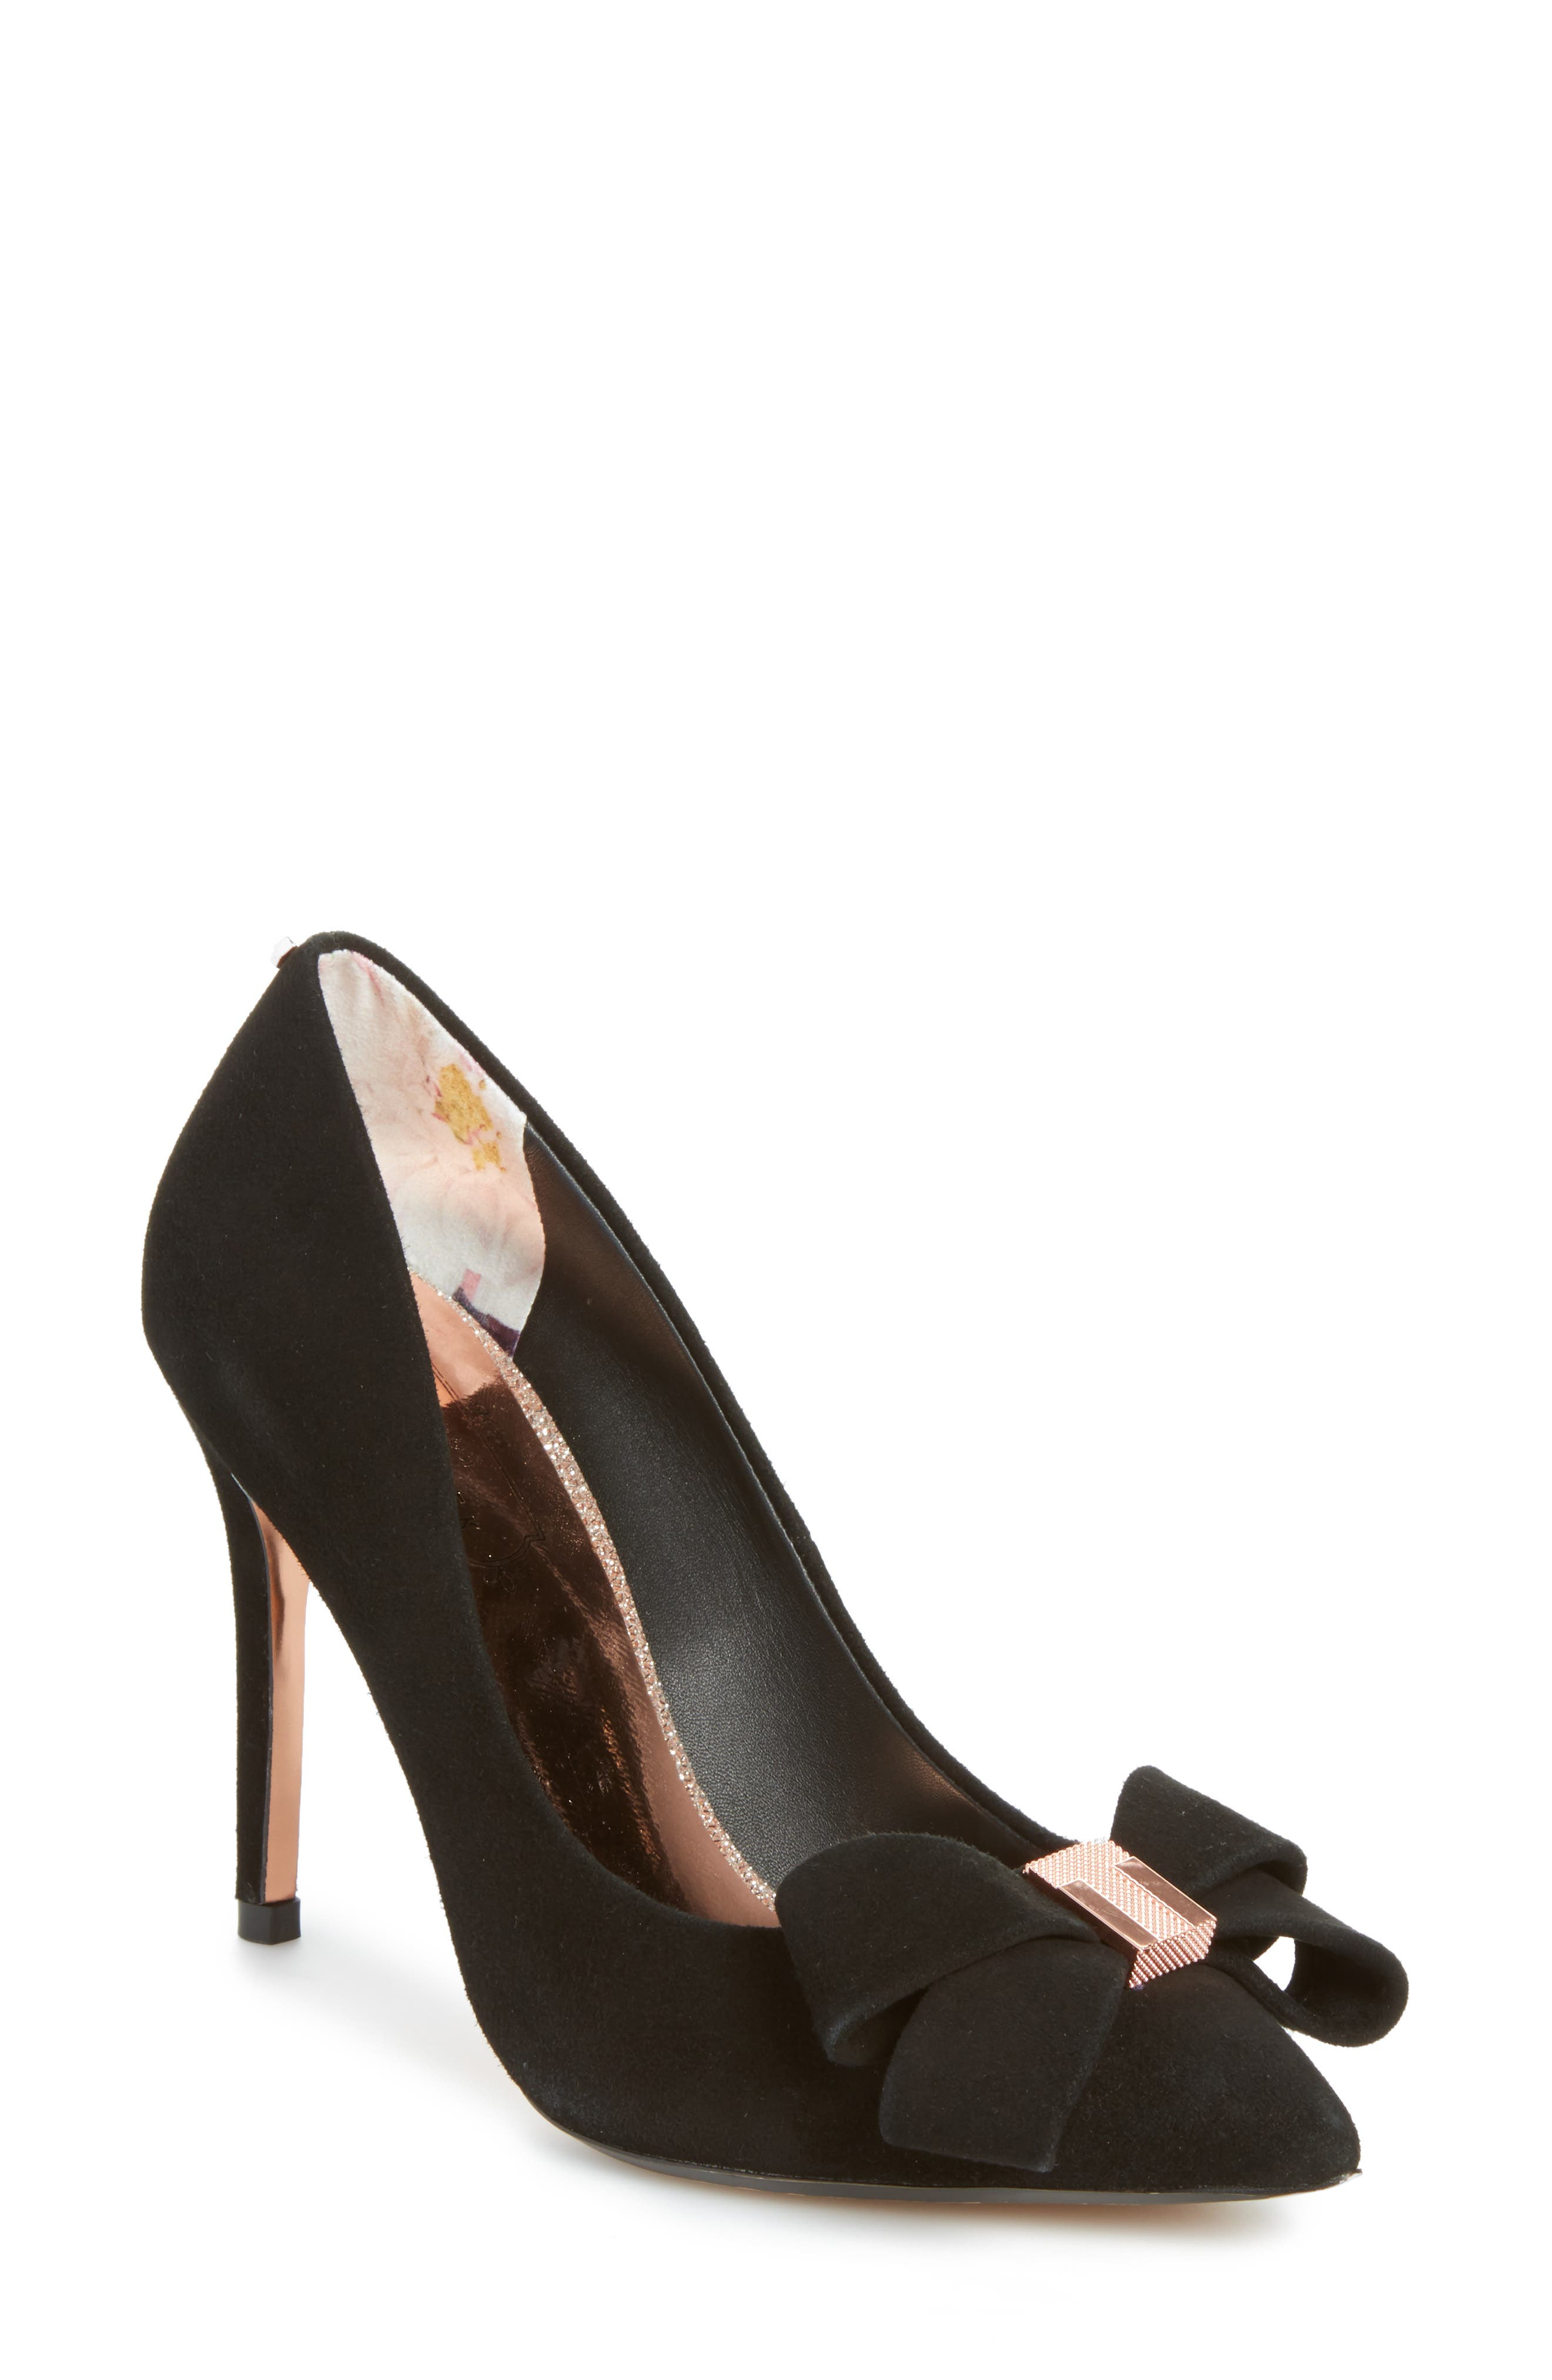 Skalett Pump,                         Main,                         color, Black Suede